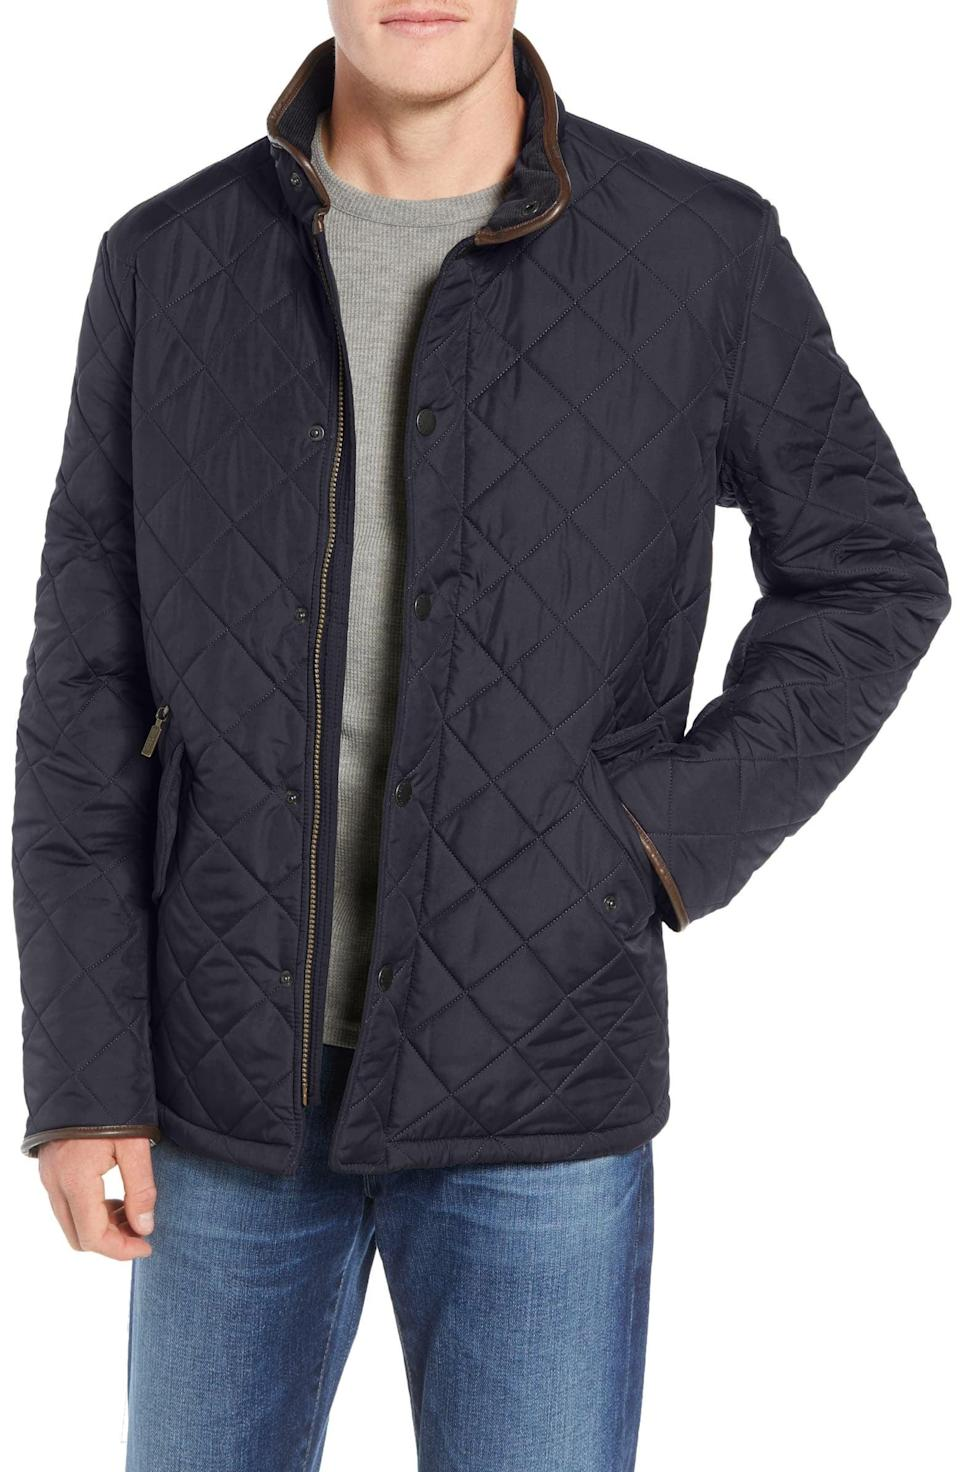 <p>The <span>Barbour Powell Quilted Jacket</span> ($300) is light enough to wear when it's not super cold out, meaning he can throw it on any month of the year.</p>